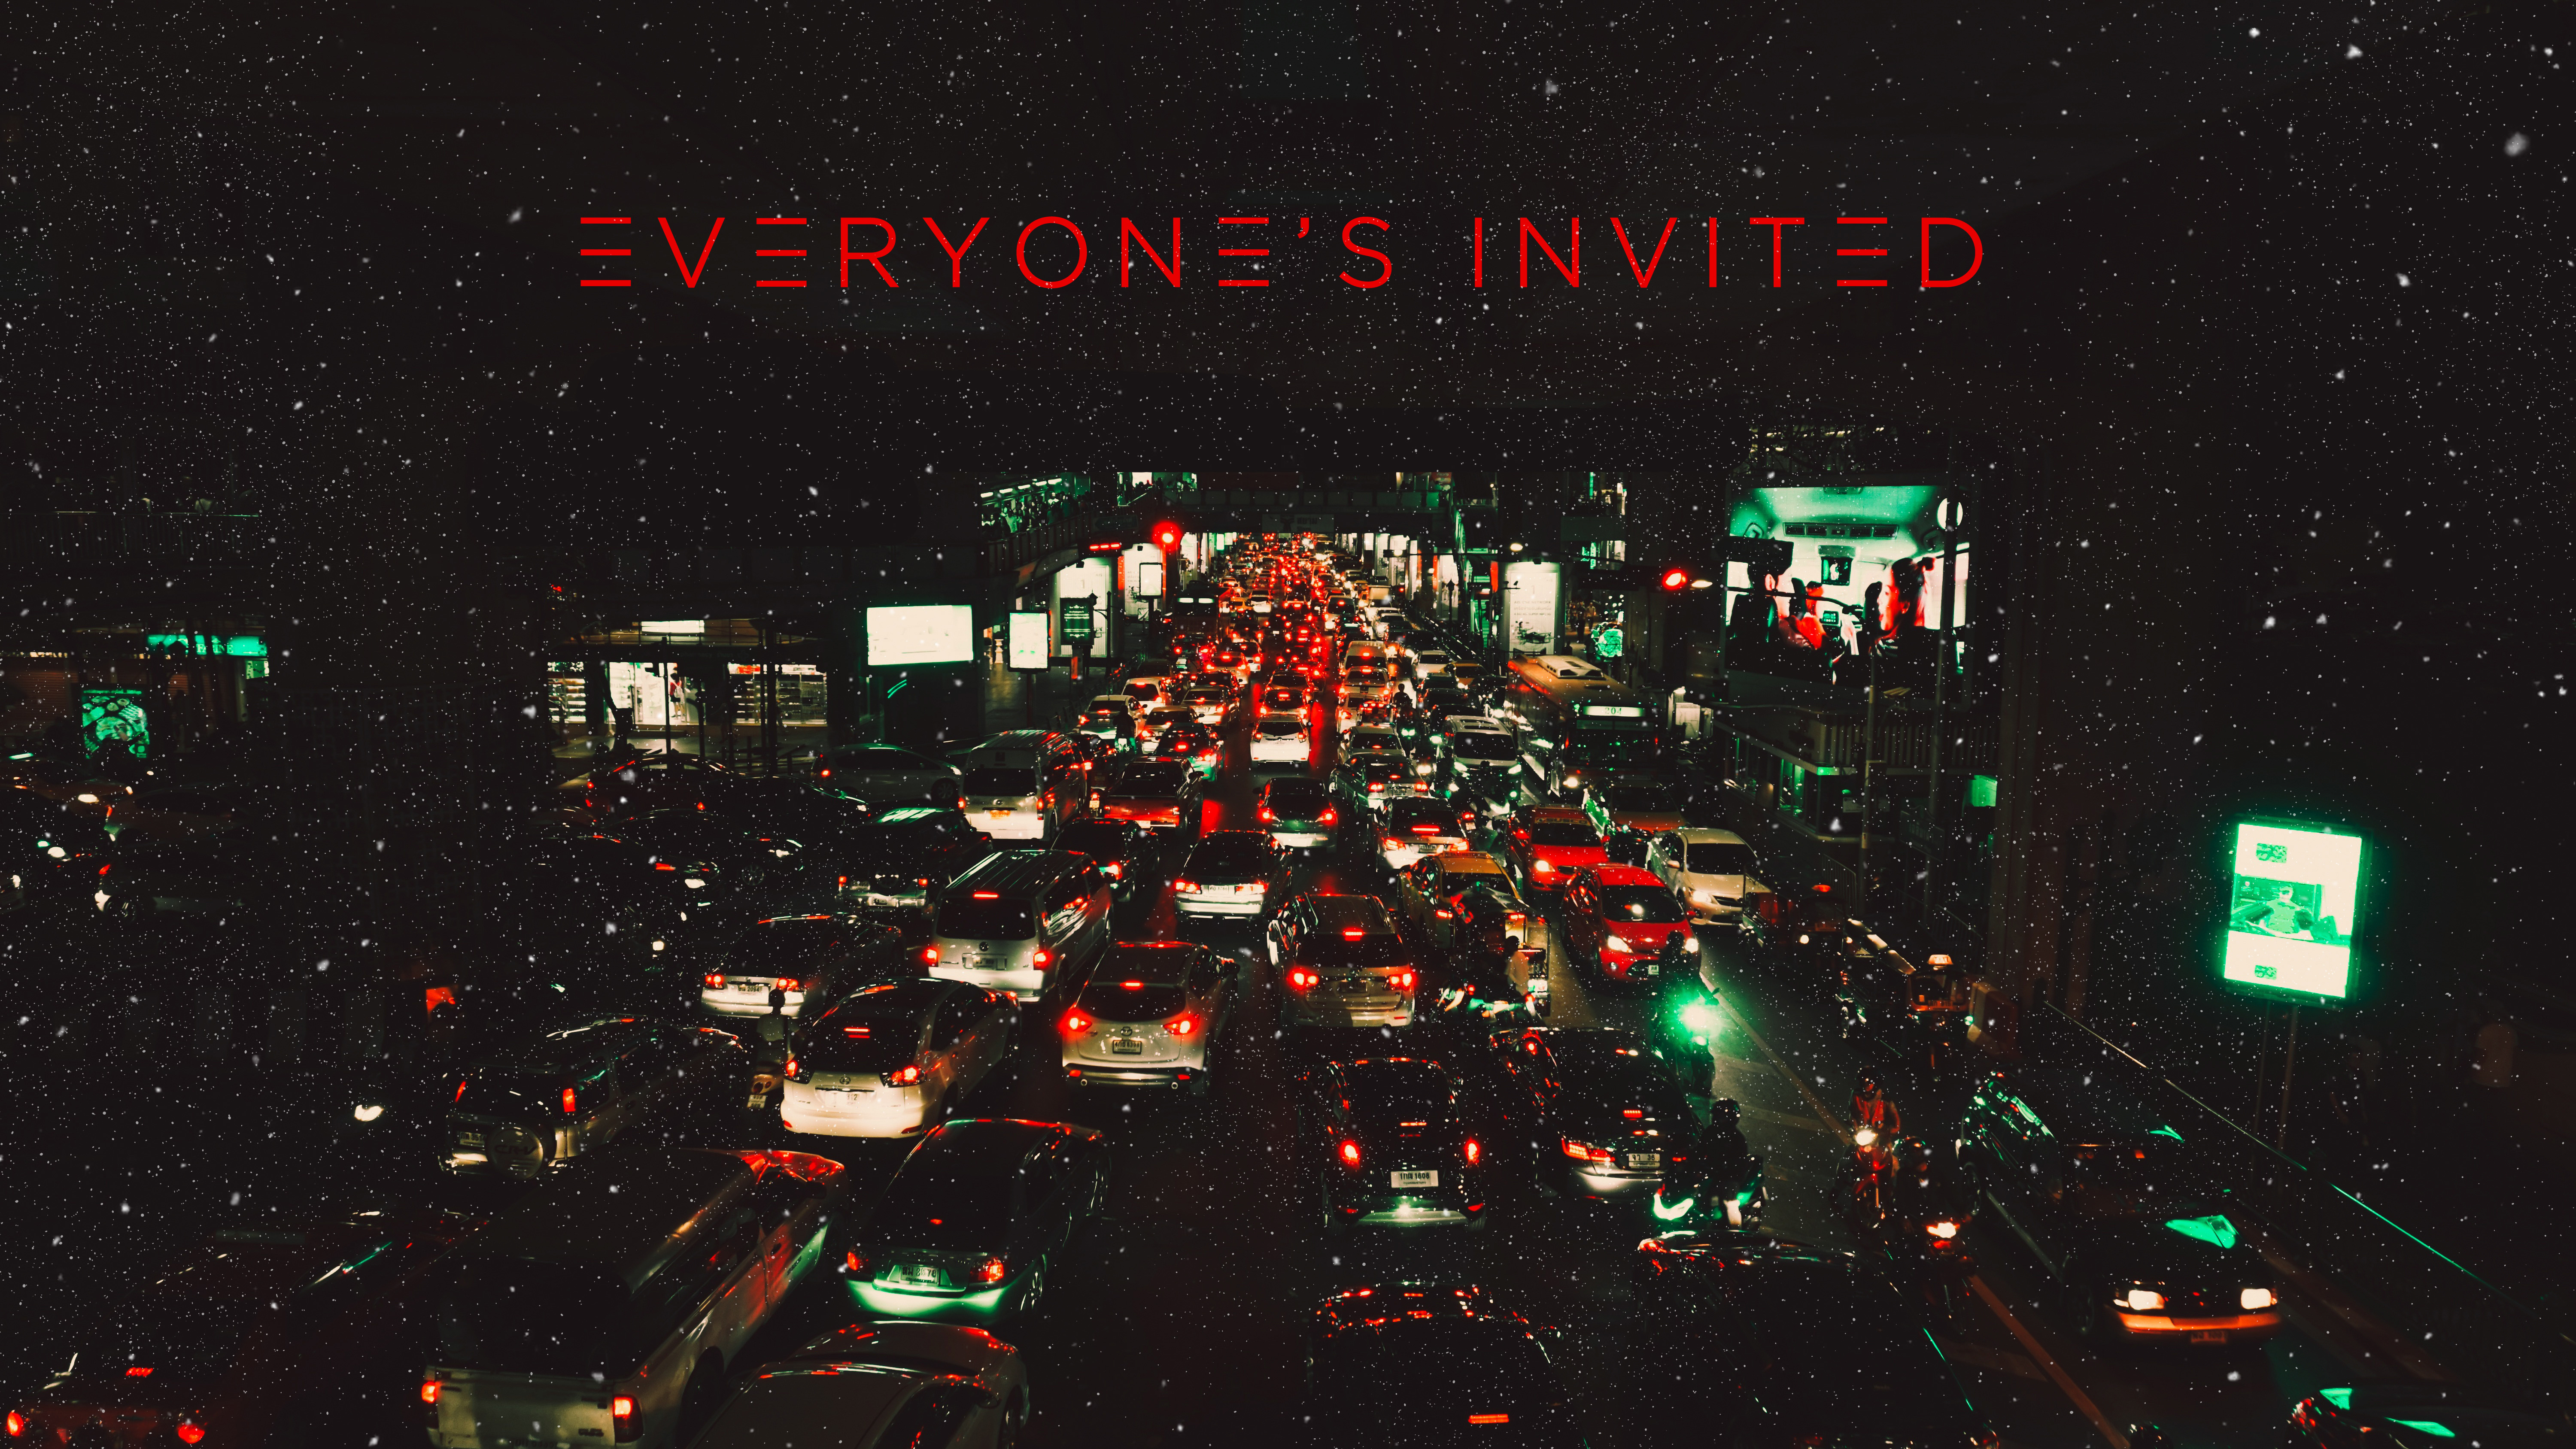 Everyone's Invited